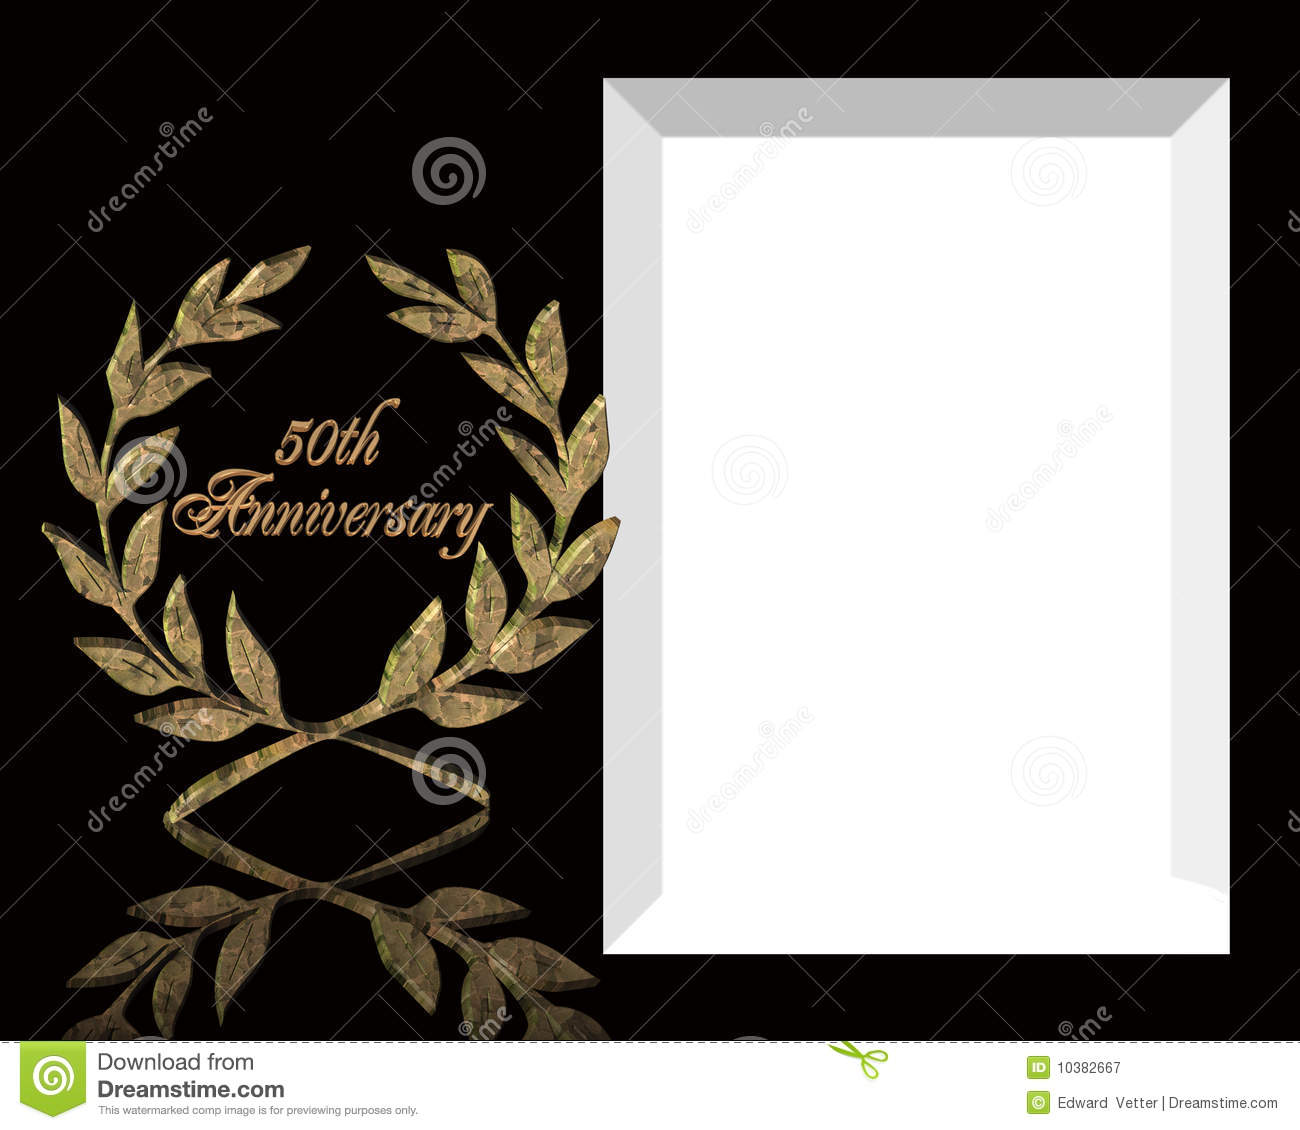 formal invitation template gold black white stock images image 50th wedding anniversary invitation royalty stock photography